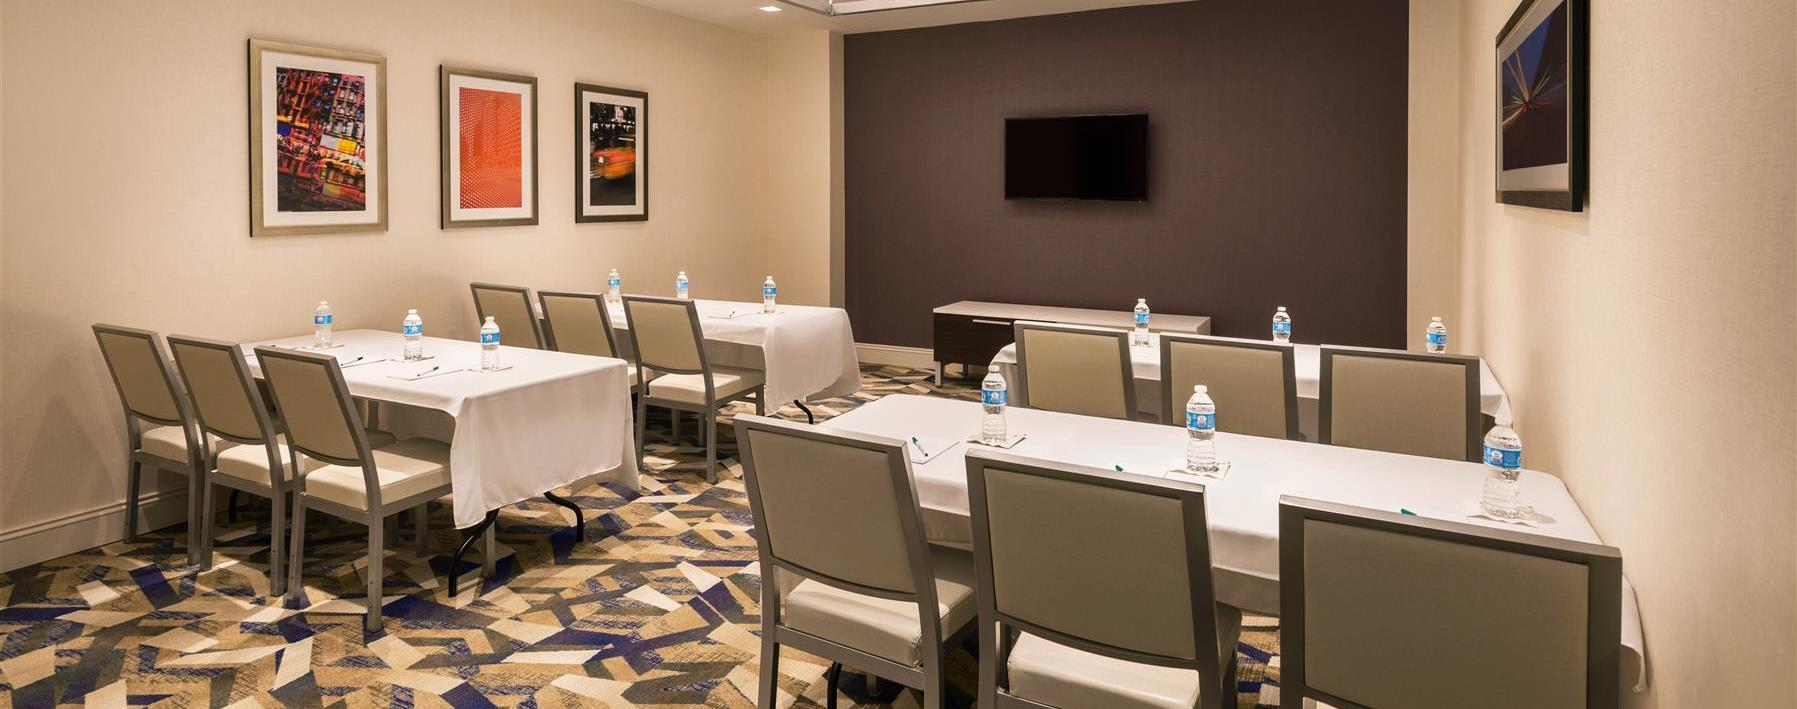 Meeting Rooms at Hilton Times Square, 234 W 42nd St, New York, NY, United States